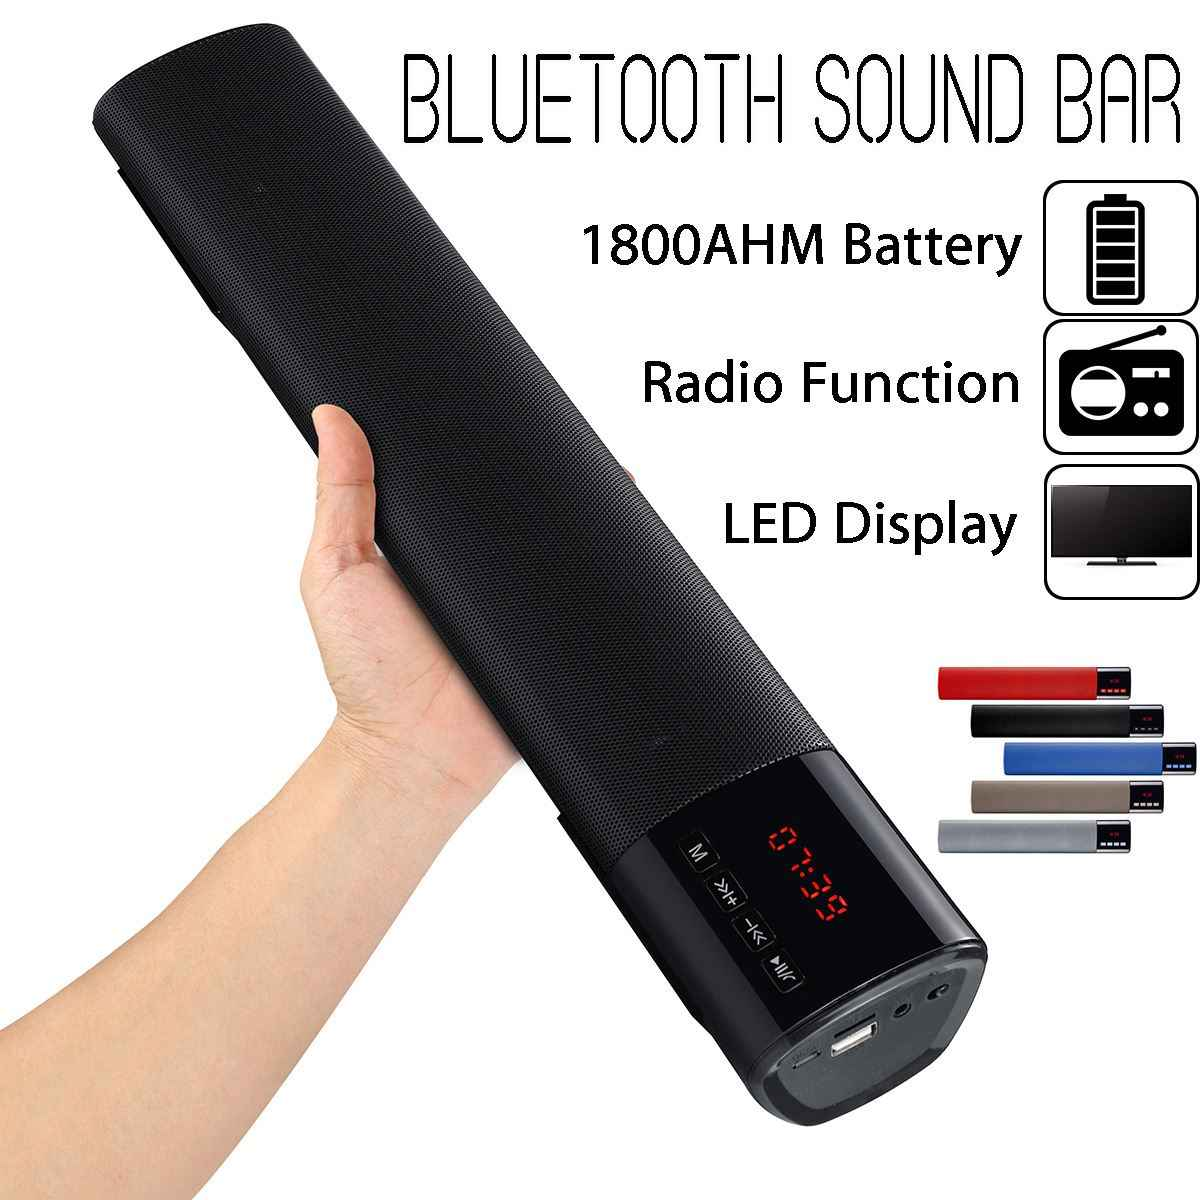 Home TV PC bluetooth Soundbar Altoparlante Portatile Subwoofer Senza Fili 3D Surround Altoparlanti HiFi Radio di Sostegno FM Orologio TF USB